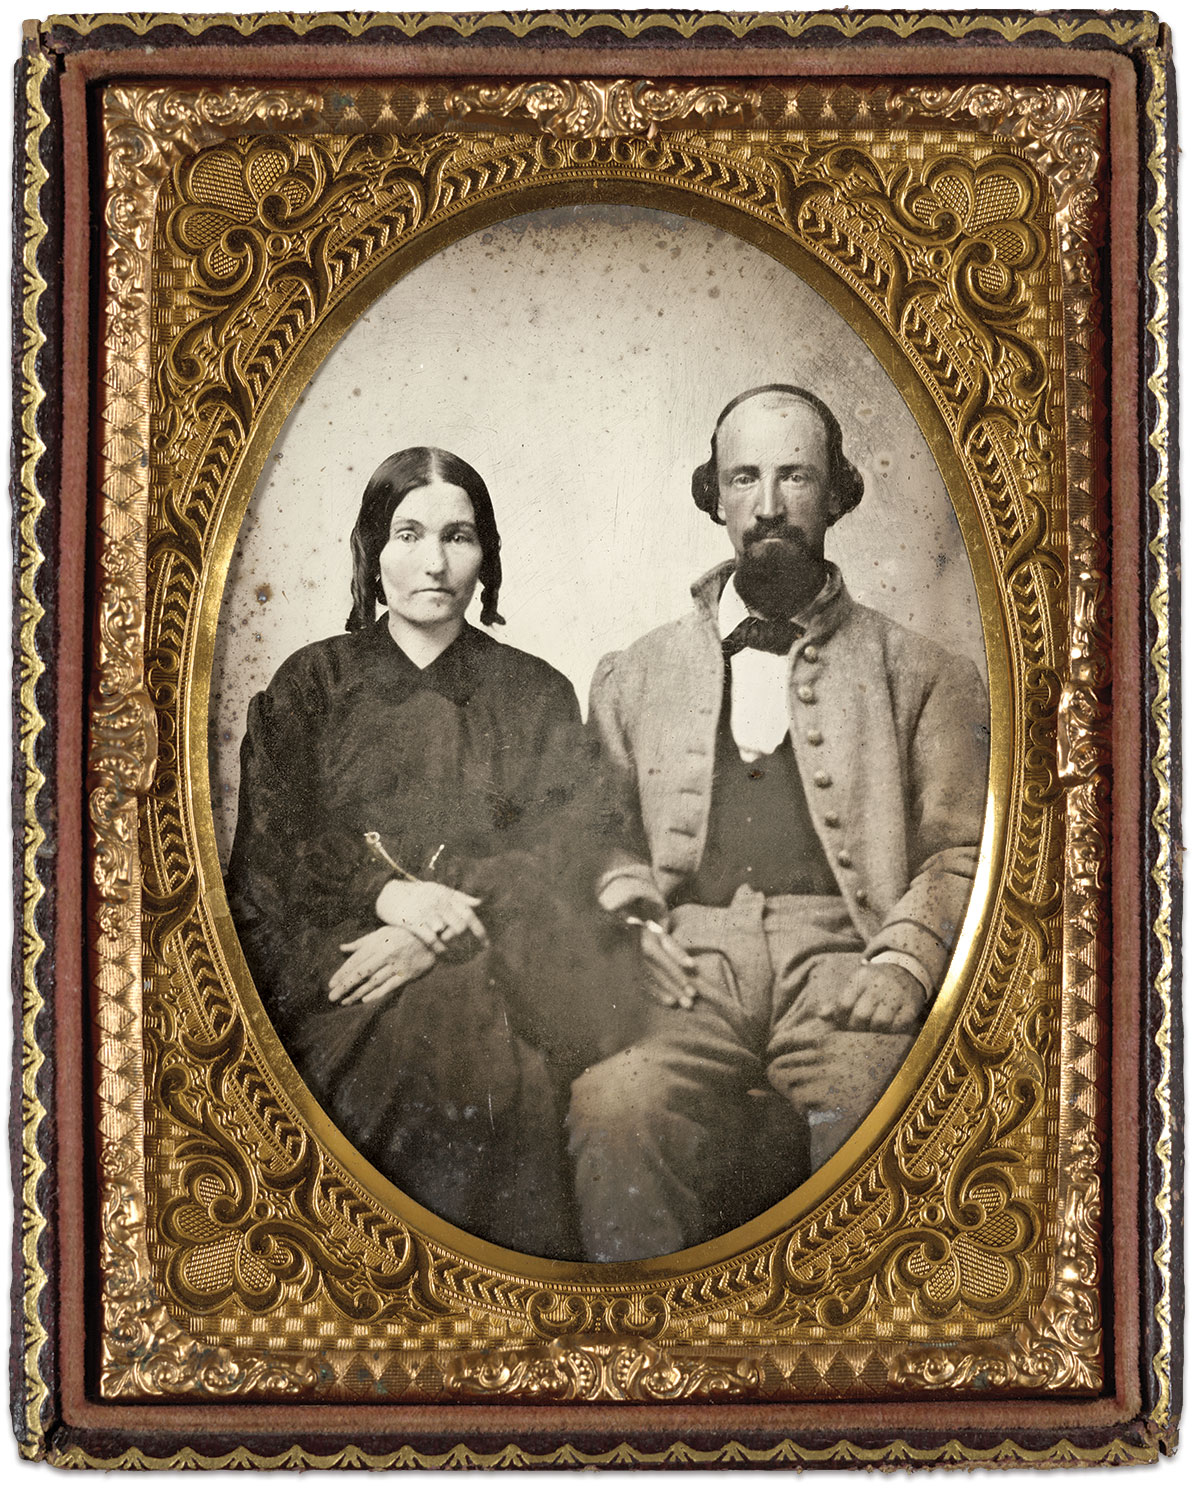 Corp. James Adril Wisenbaker, Company I, 12th Georgia Infantry and his wife, Sarah. Quarter-plate ambrotype by an anonymous photographer. The Liljenquist Family Collection at the Library of Congress.